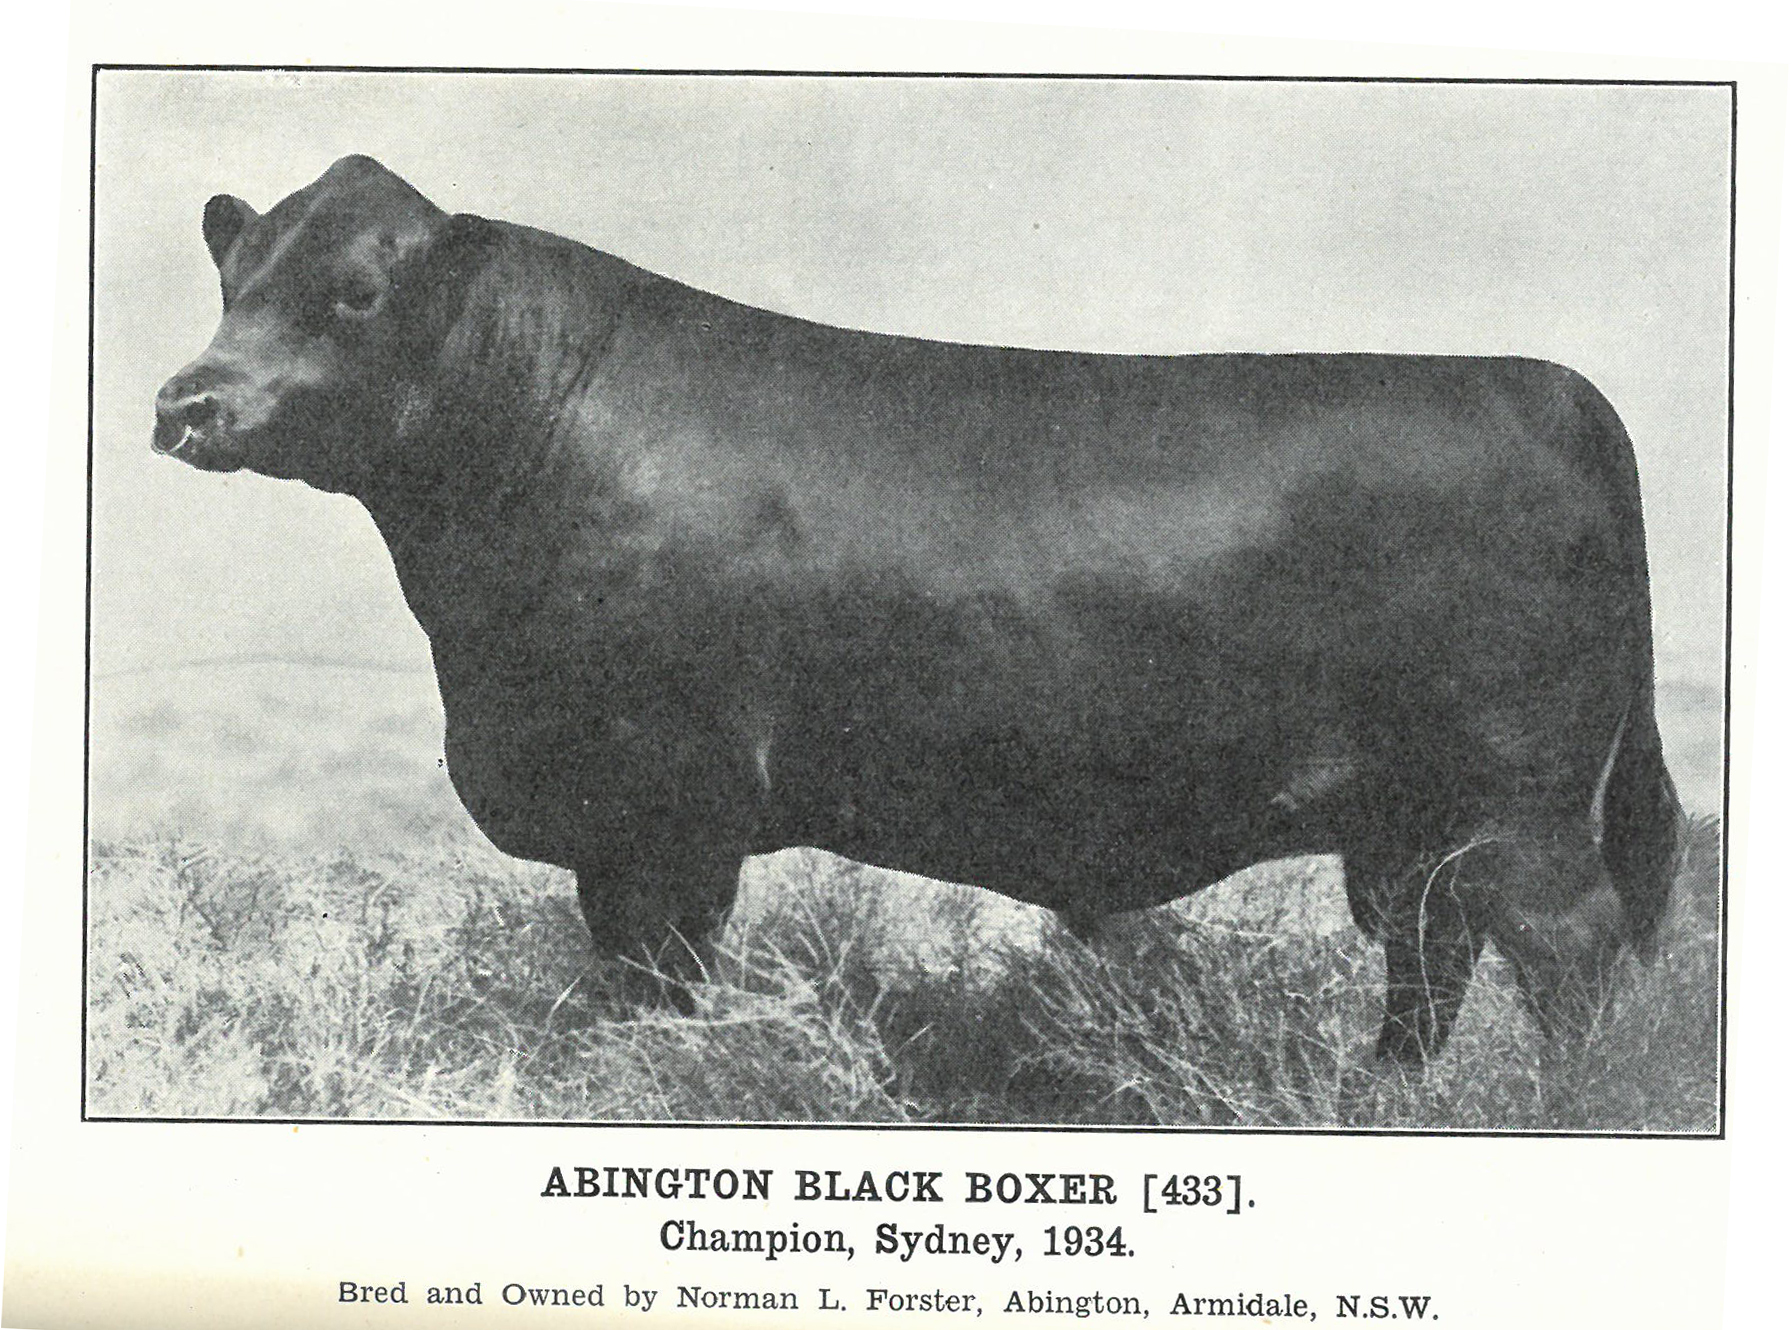 Abington Black Boxer